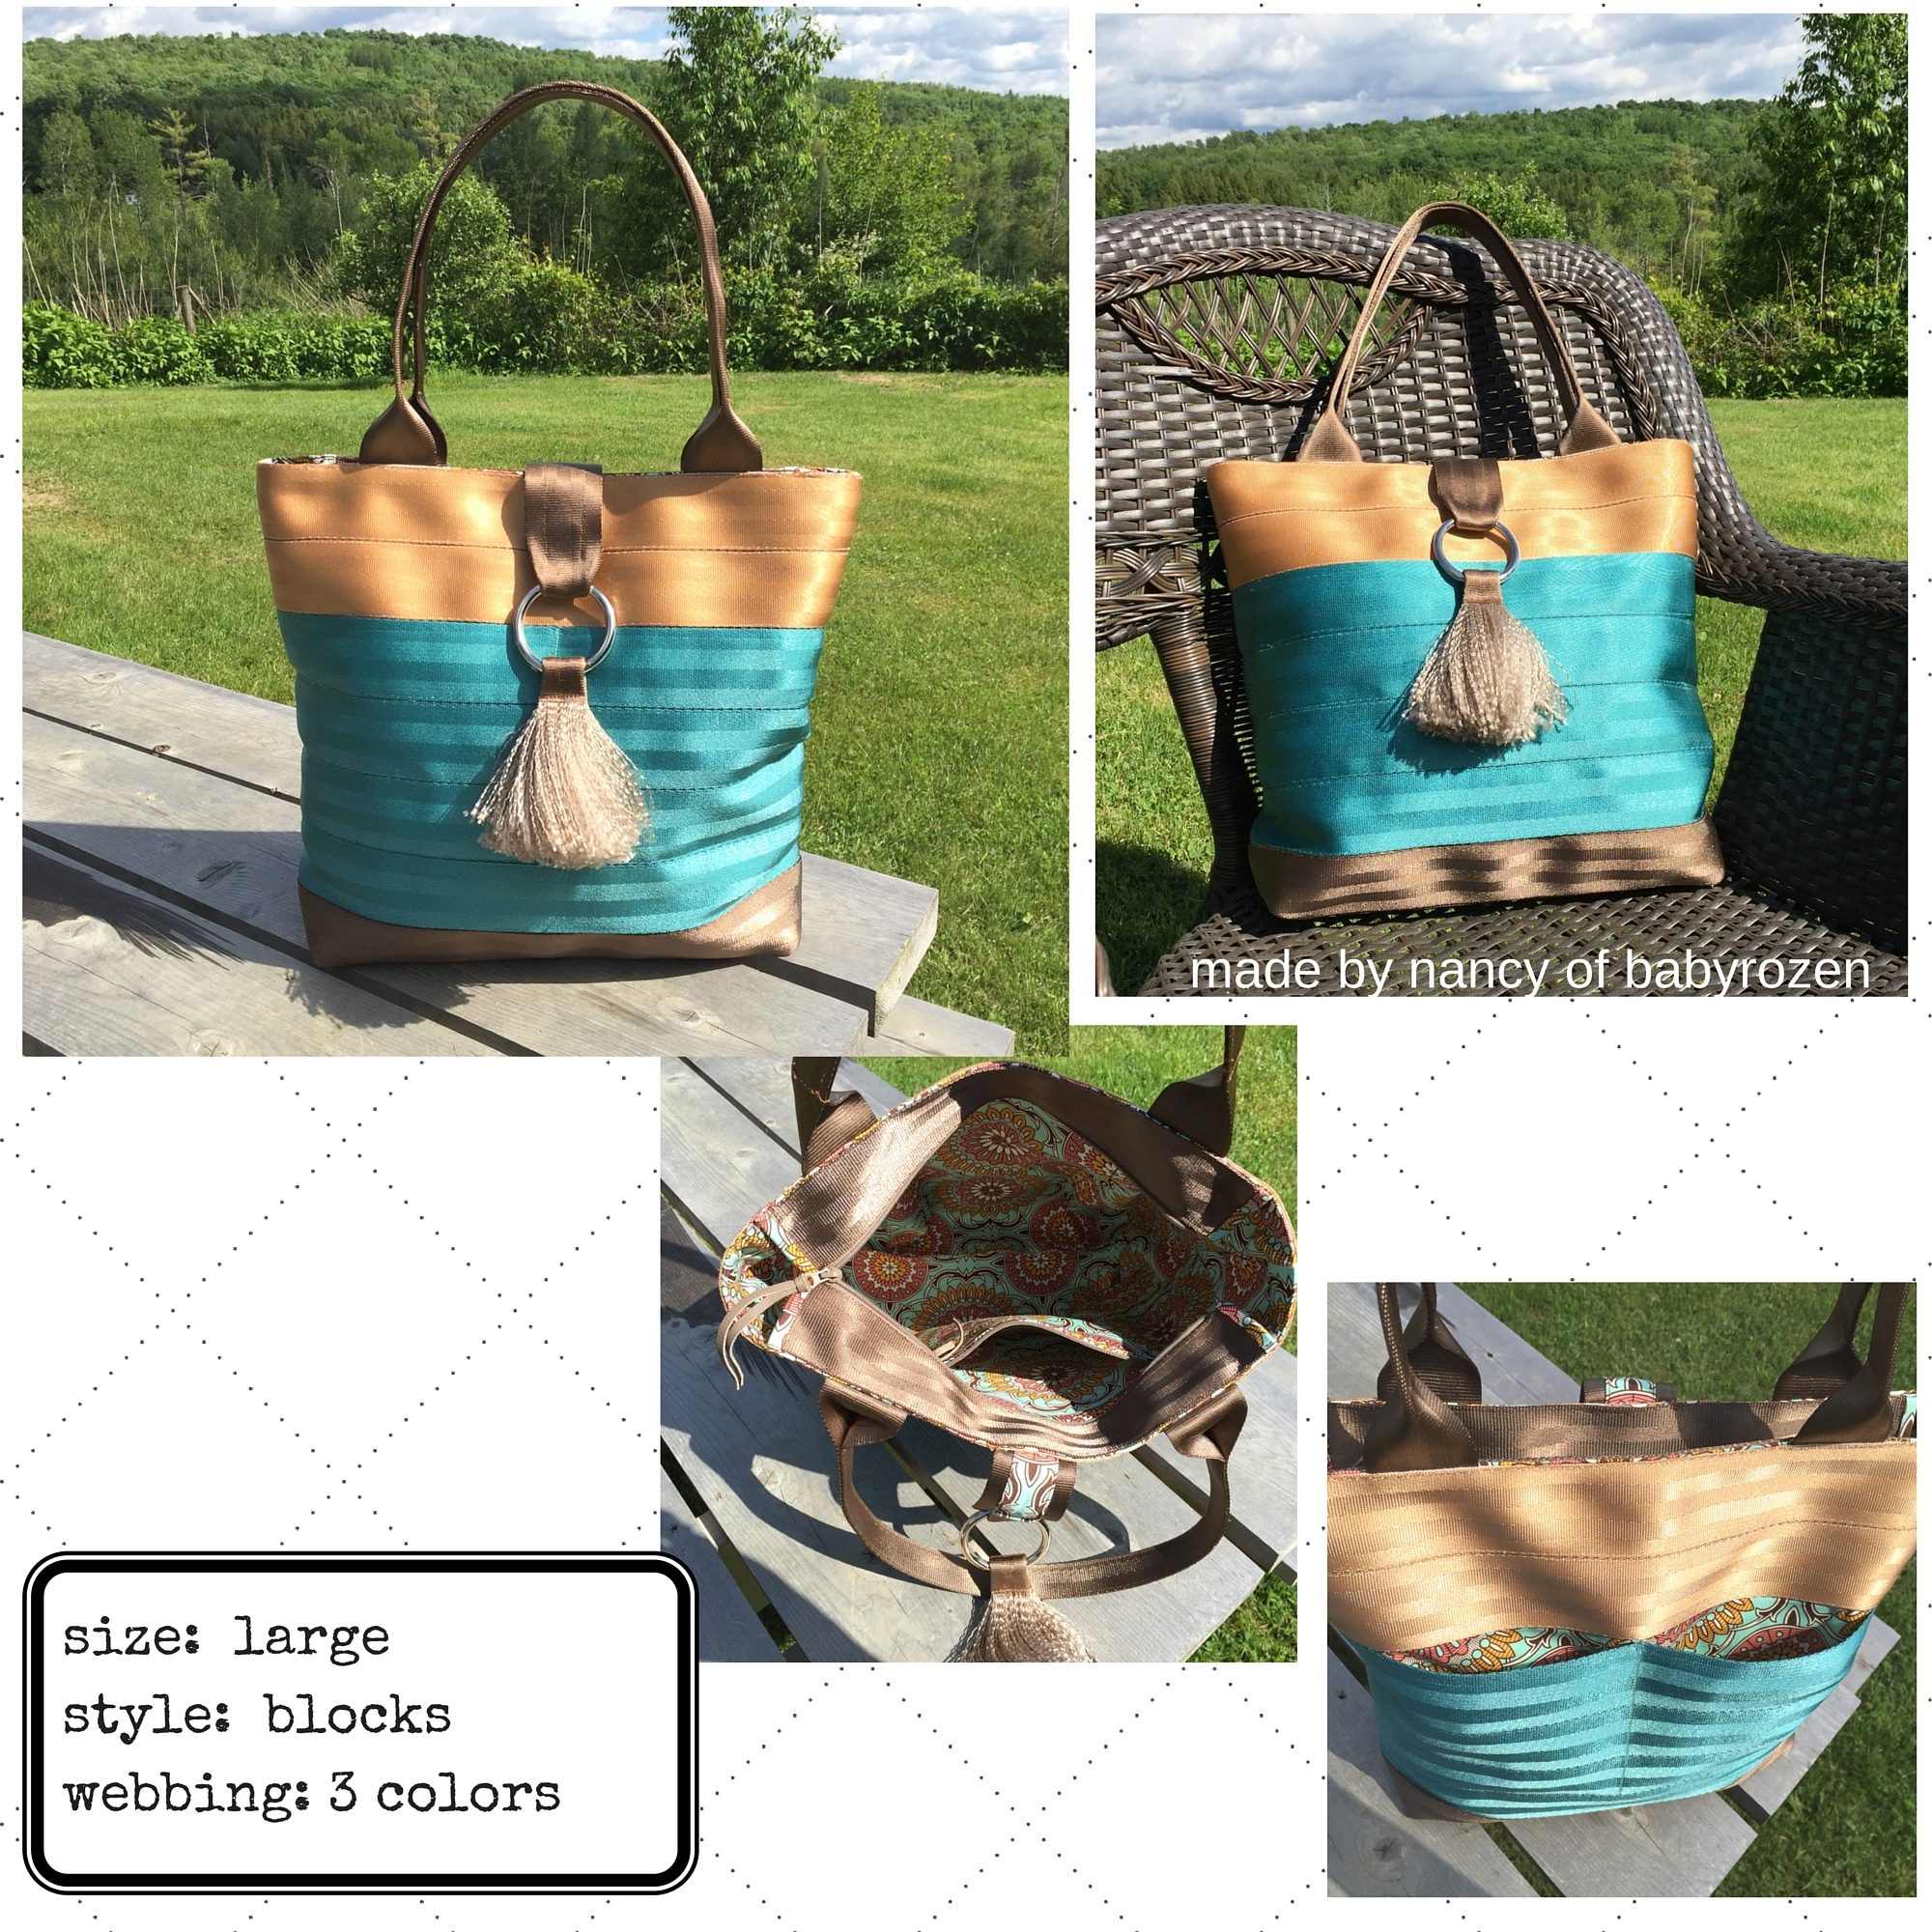 nancy's copper, aqua and otter brown tote (1)